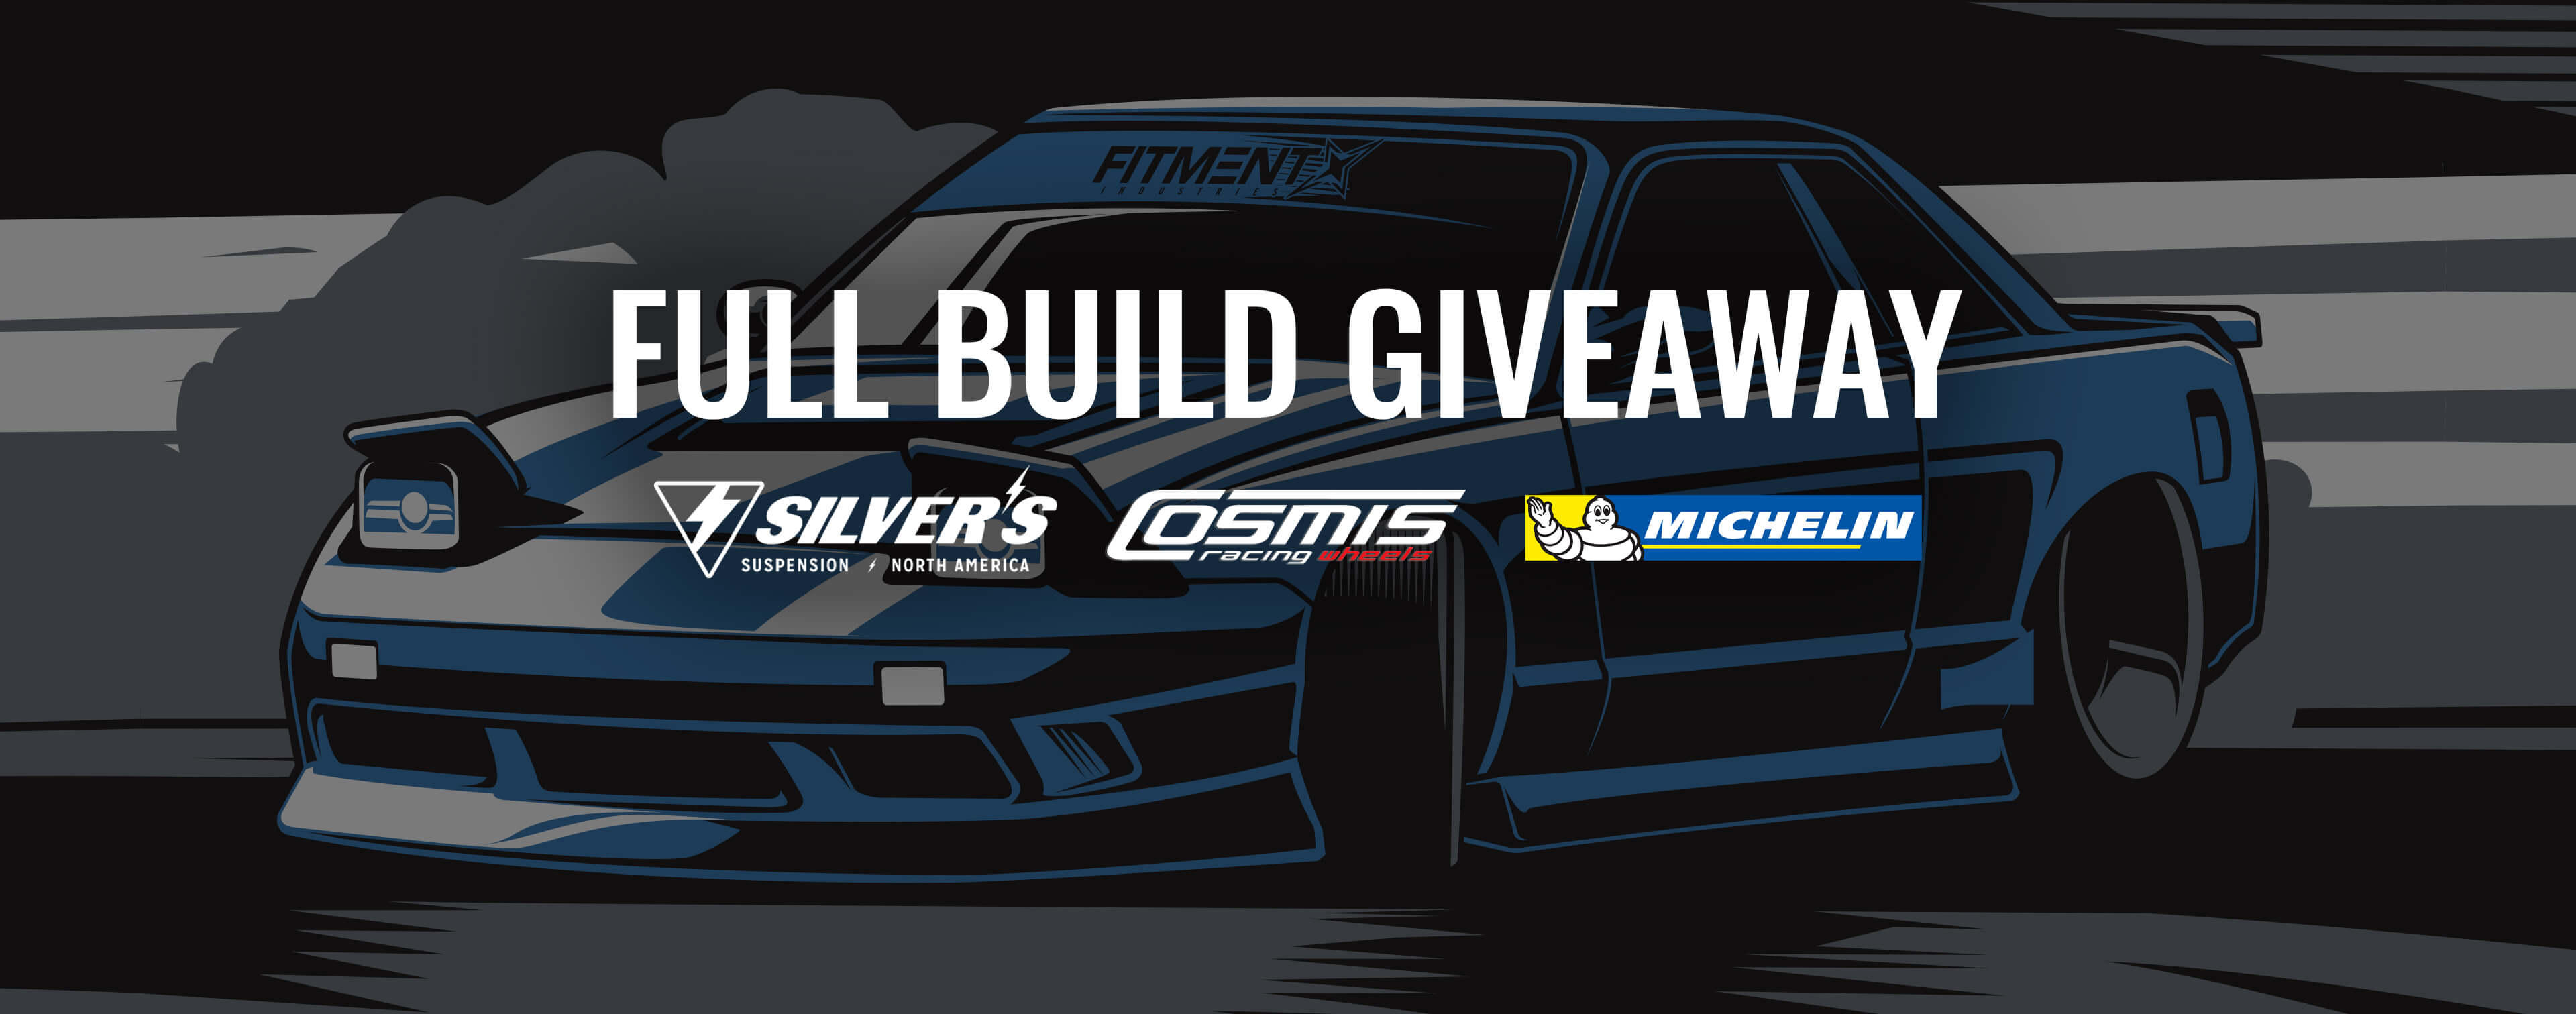 Fitment Industries & Cosmis Racing, Silvers Suspension & Michelin Giveaway